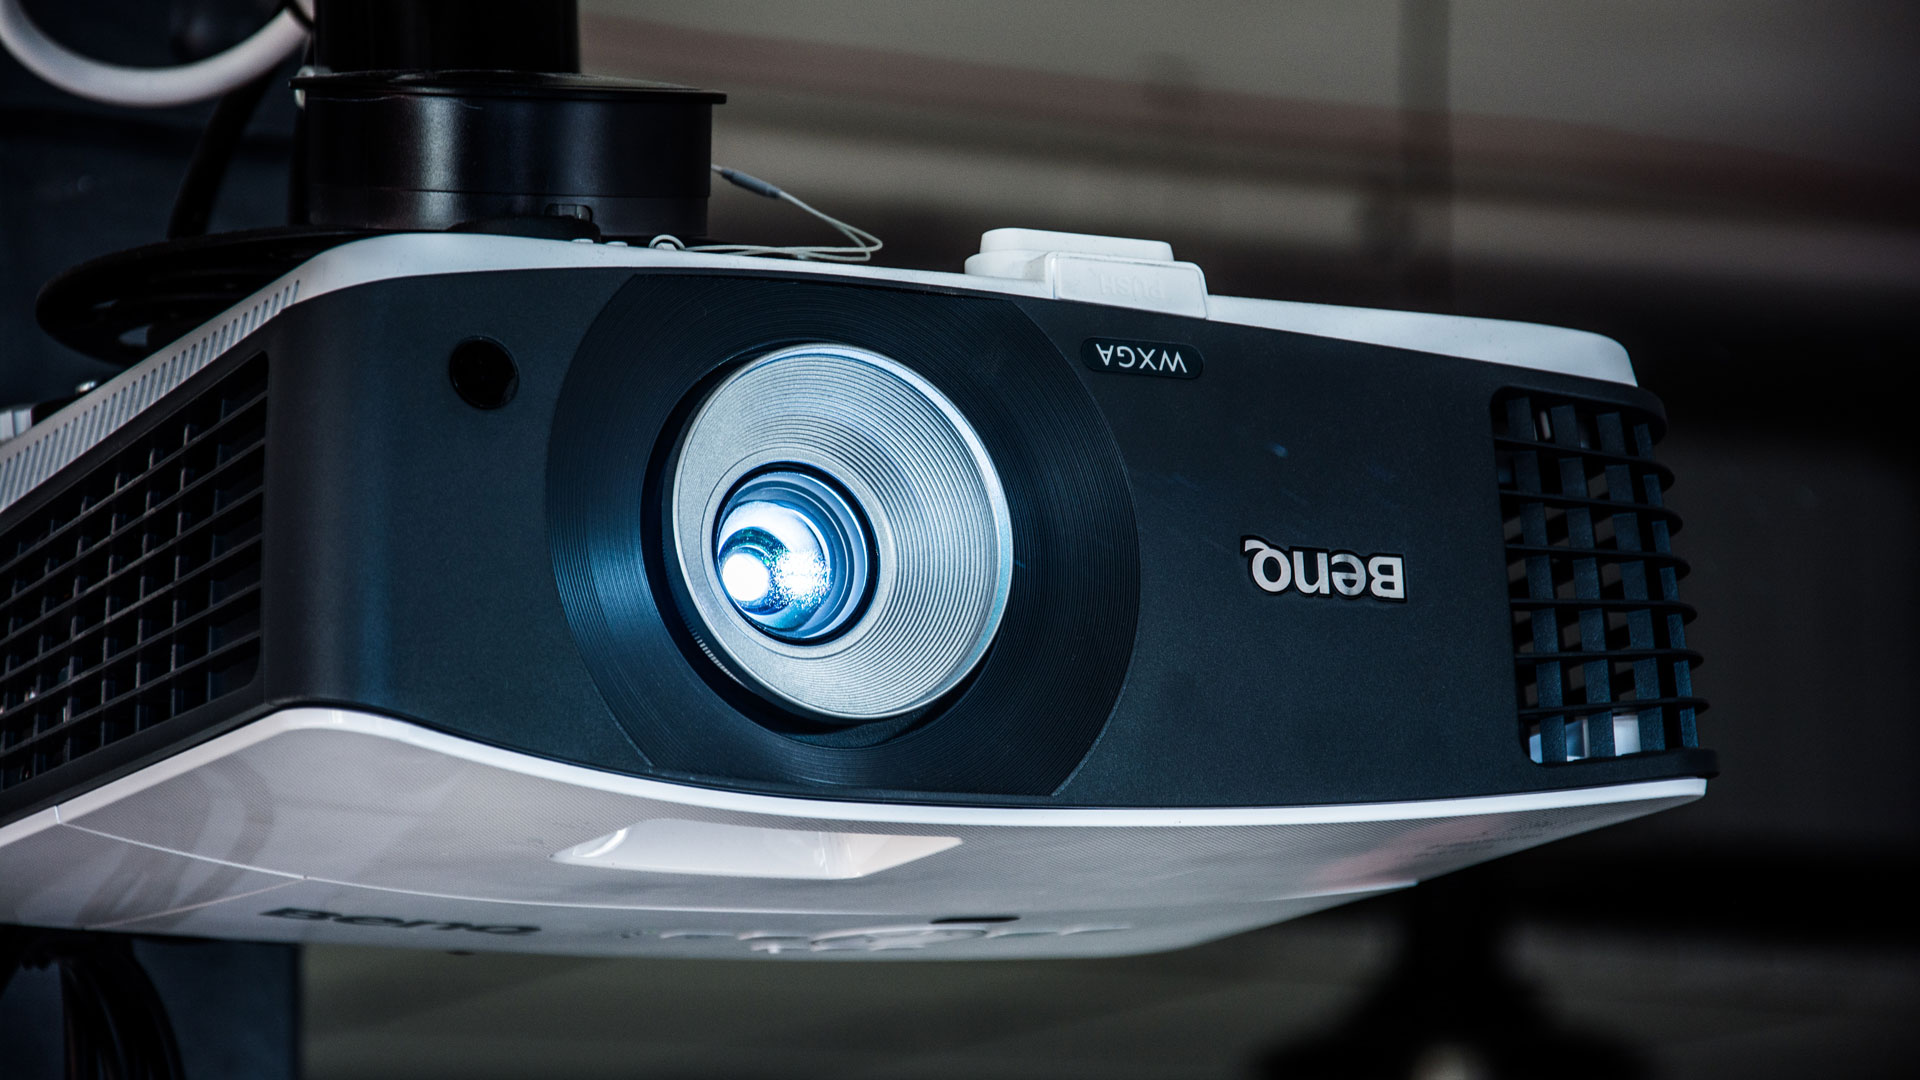 The Short and Sweet Way to Find a Projector